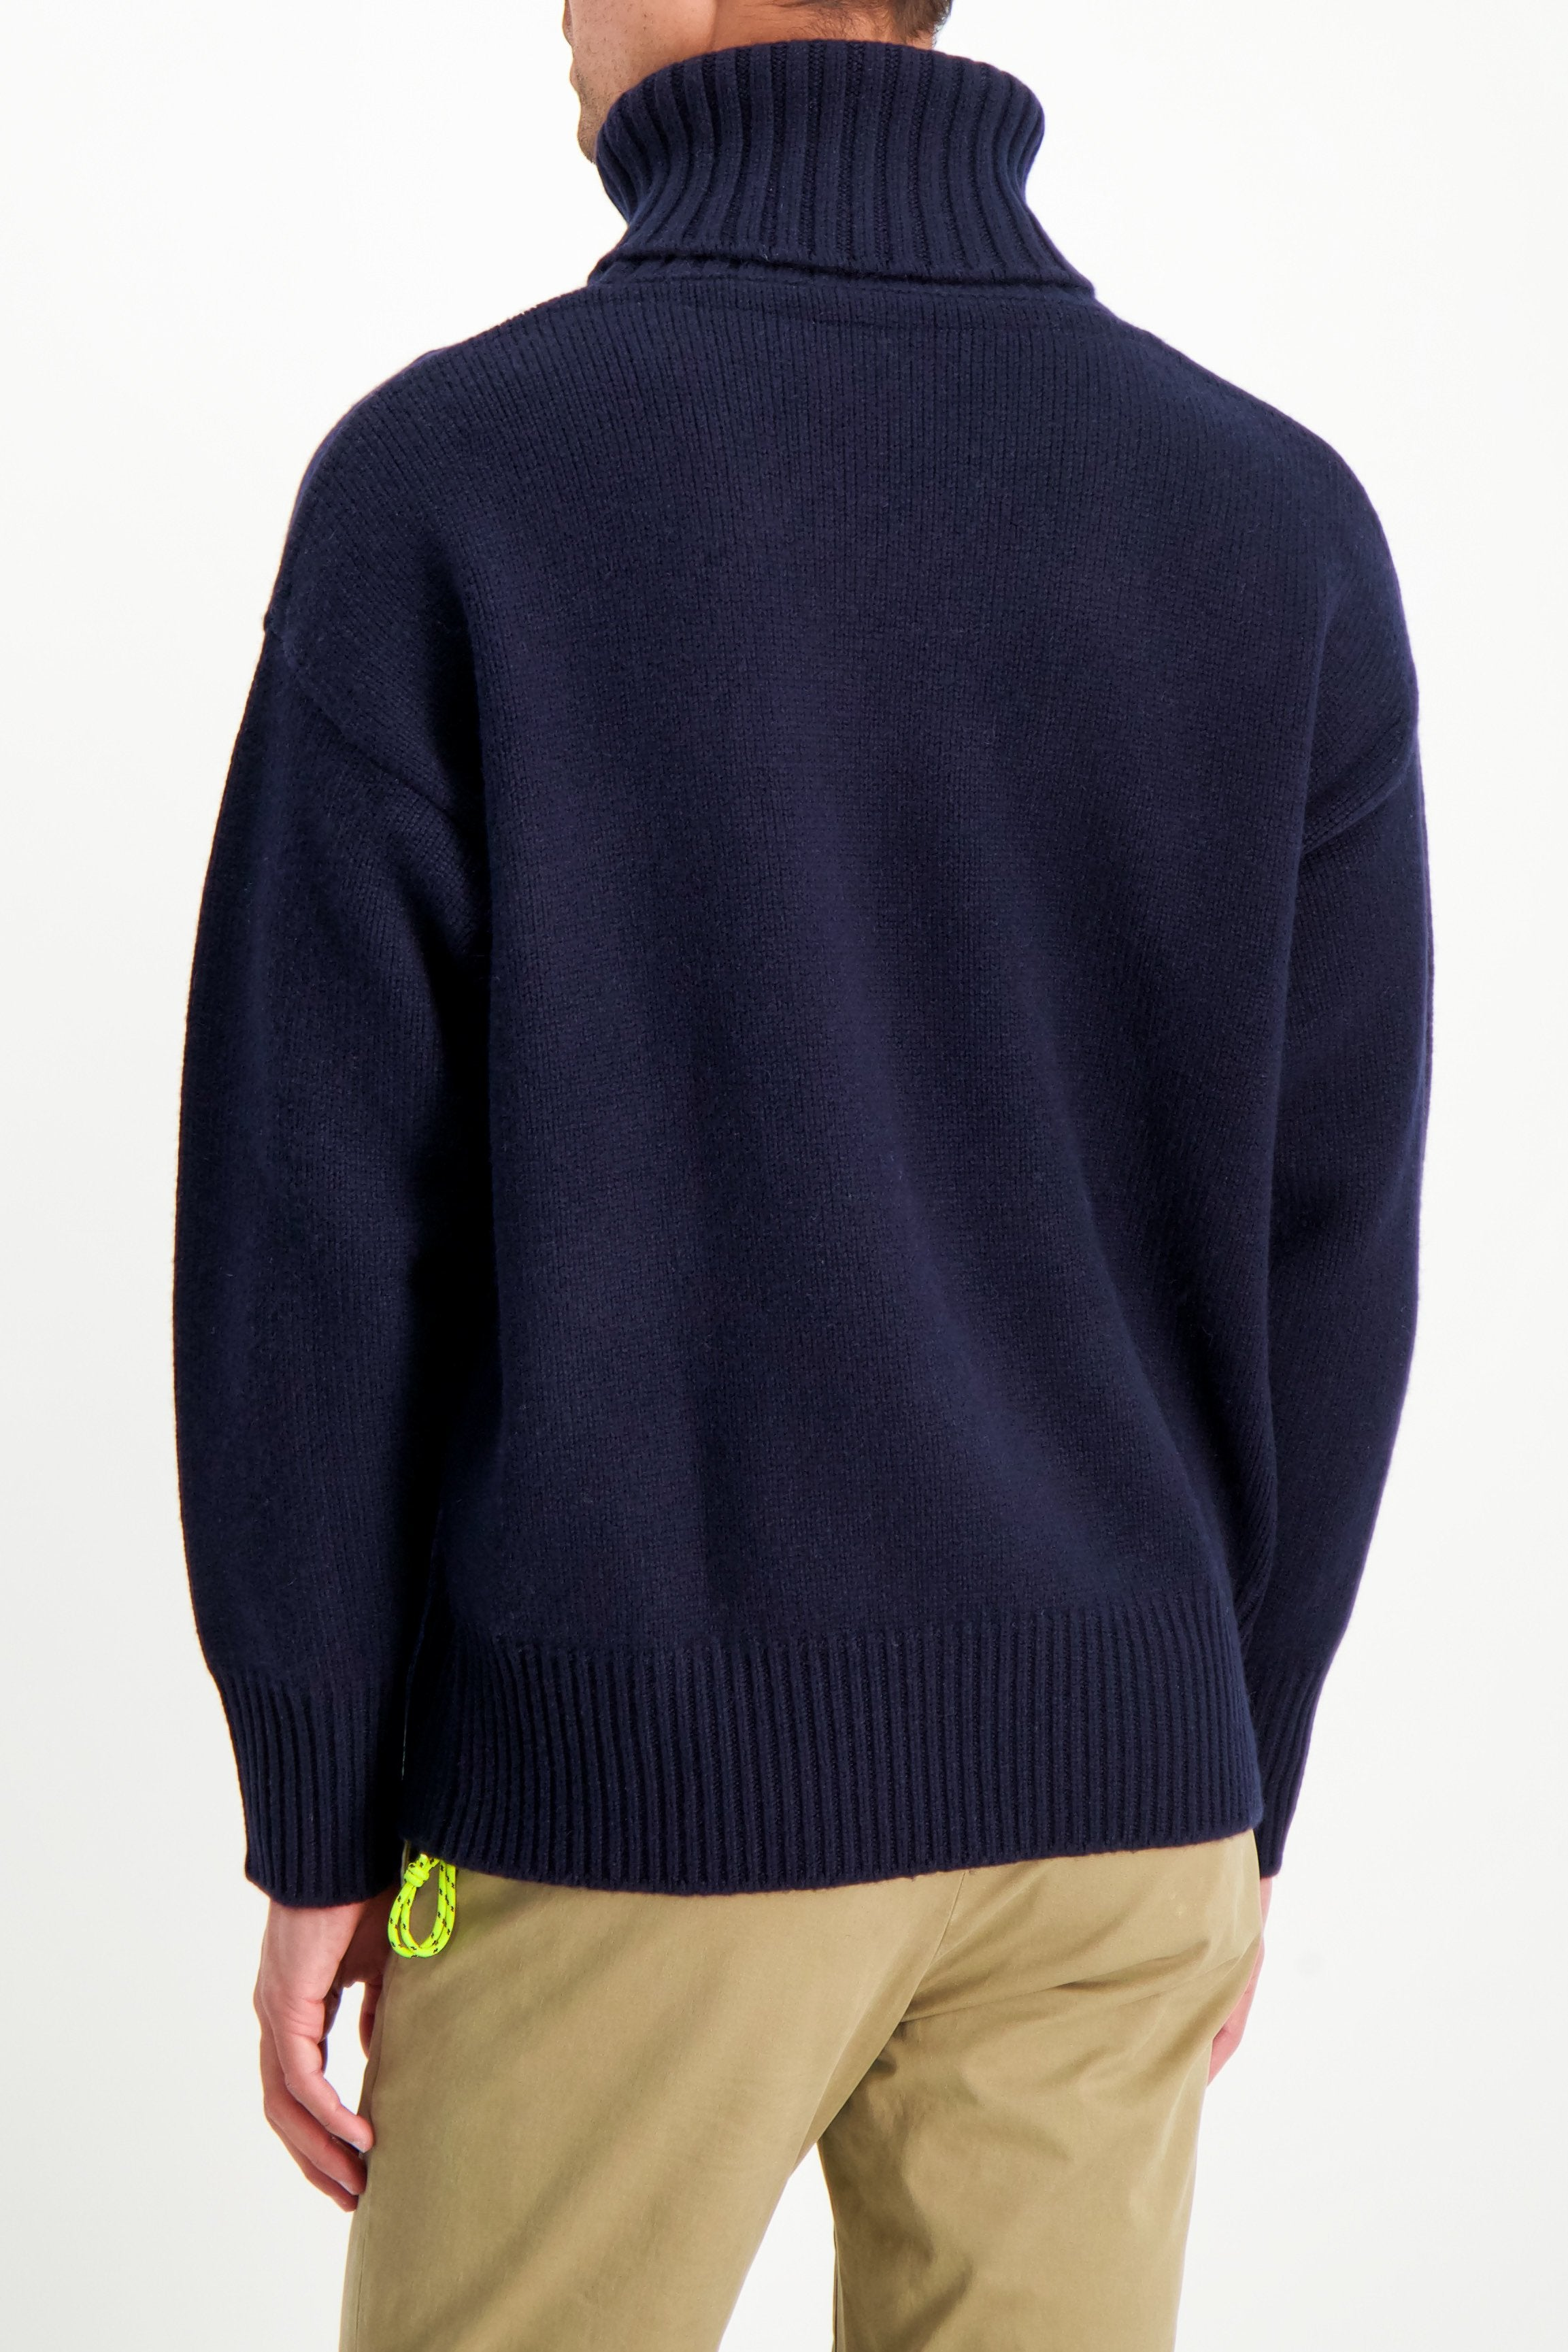 Back Crop Image Of Model Wearing Extreme Cashmere N°20 Oversize Xtra Sweater Navy